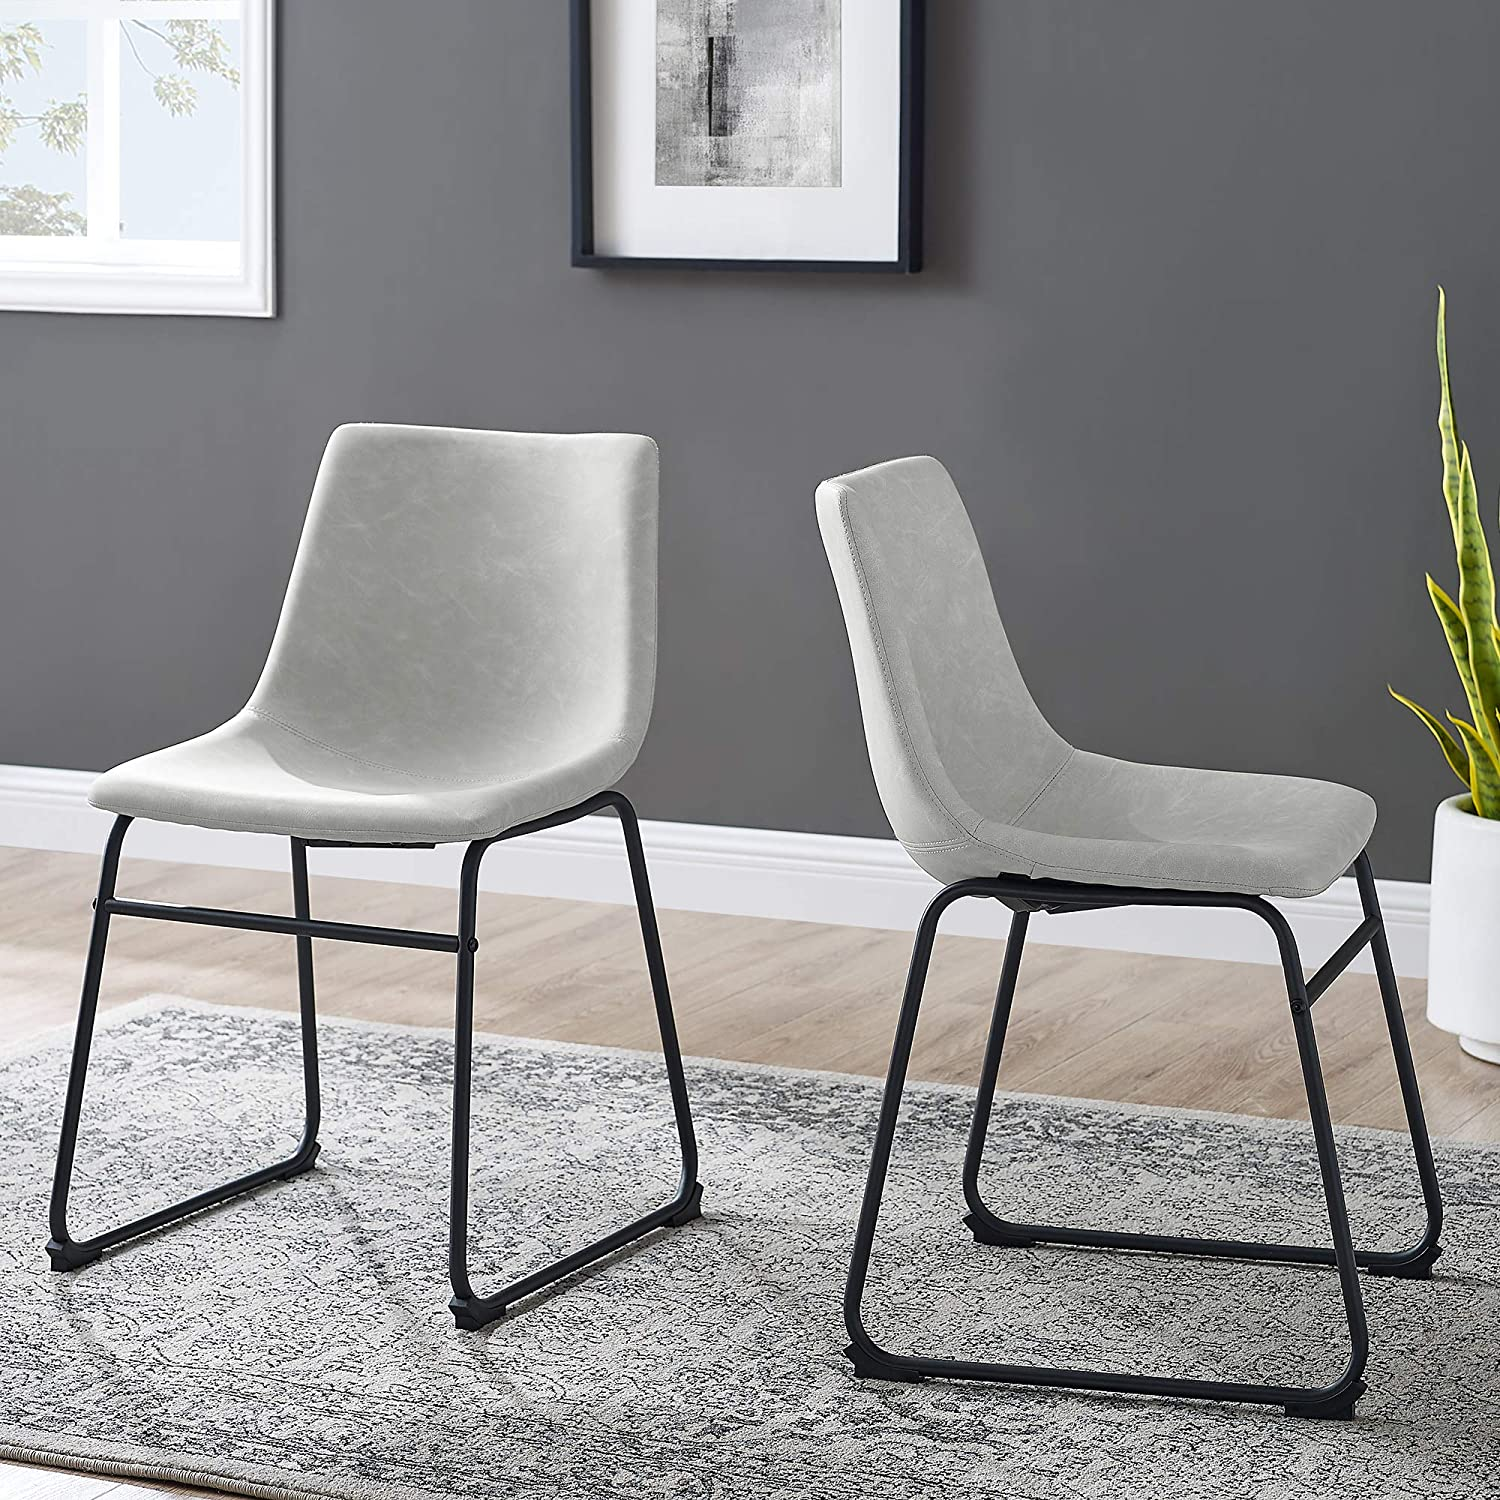 Walker Edison Furniture Company Modern Faux Leather Upholstered Dining Chair, Set of 2, Gray